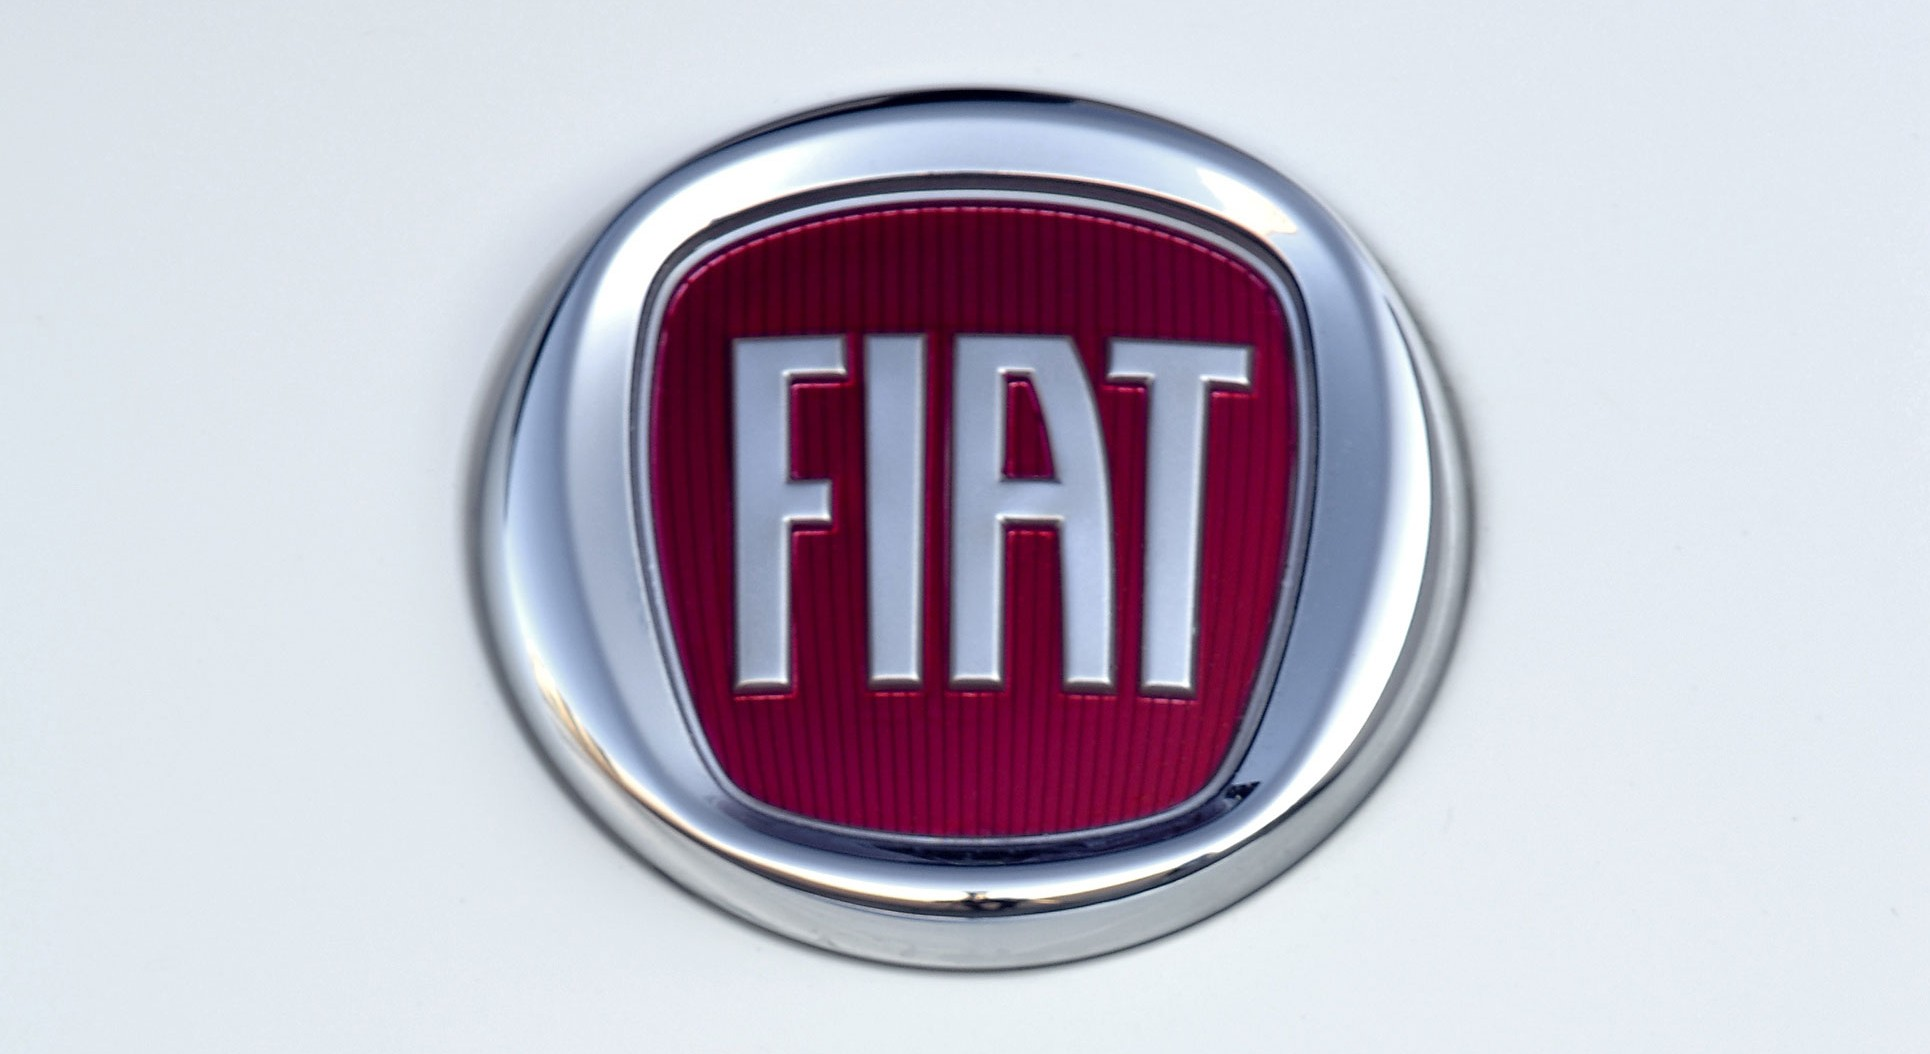 This-is-Fiat-e1346324290405.jpg